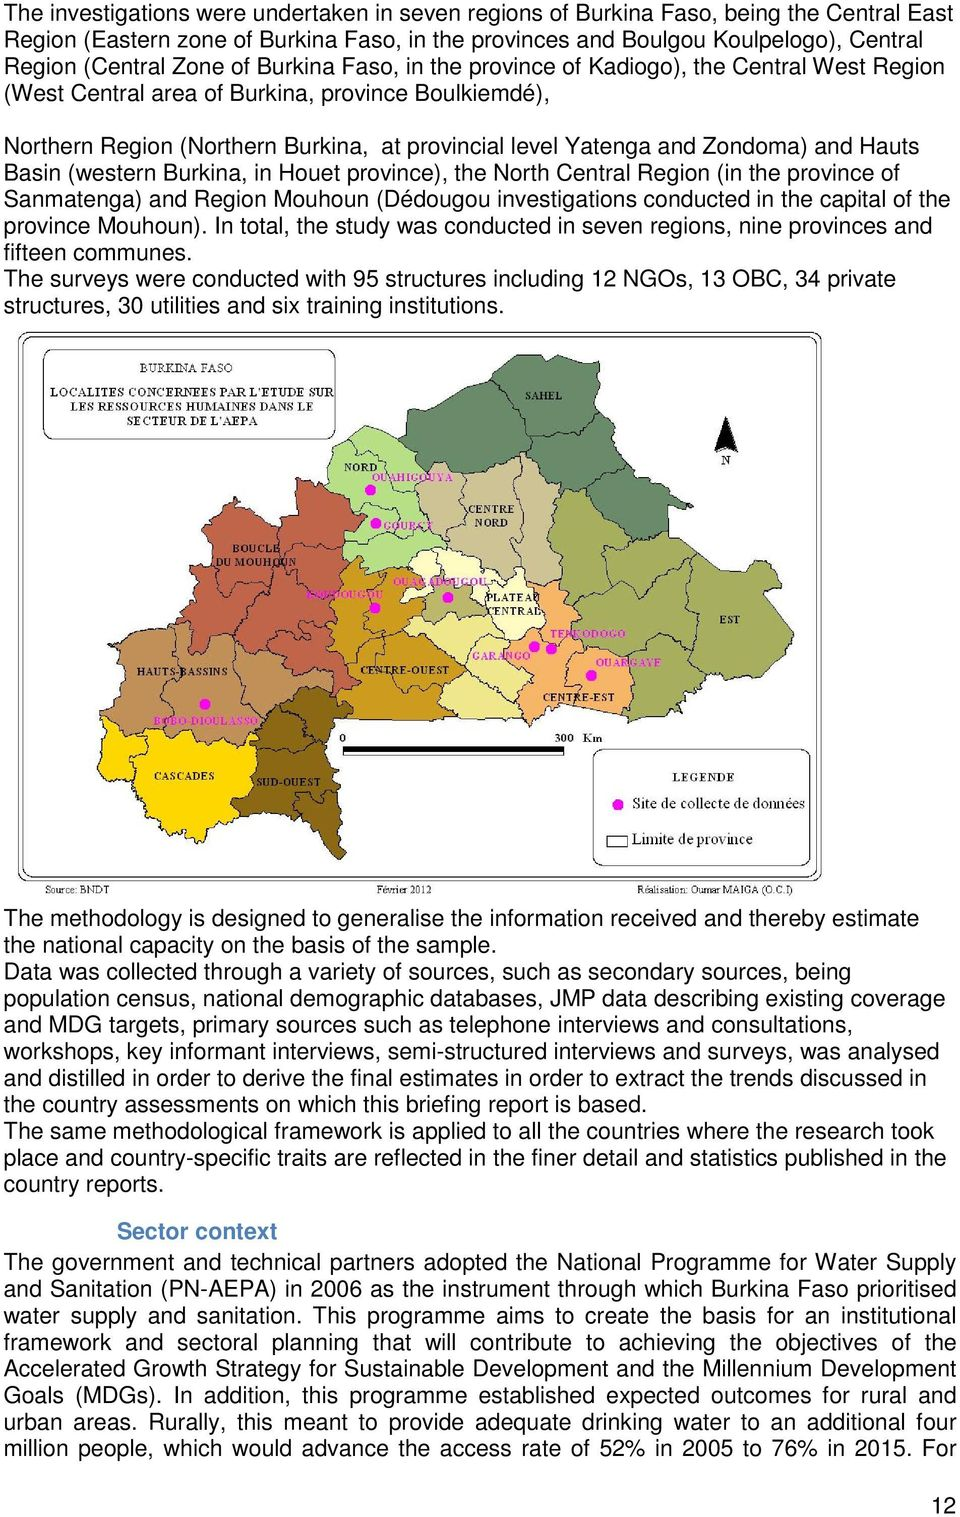 Zondoma) and Hauts Basin (western Burkina, in Houet province), the North Central Region (in the province of Sanmatenga) and Region Mouhoun (Dédougou investigations conducted in the capital of the